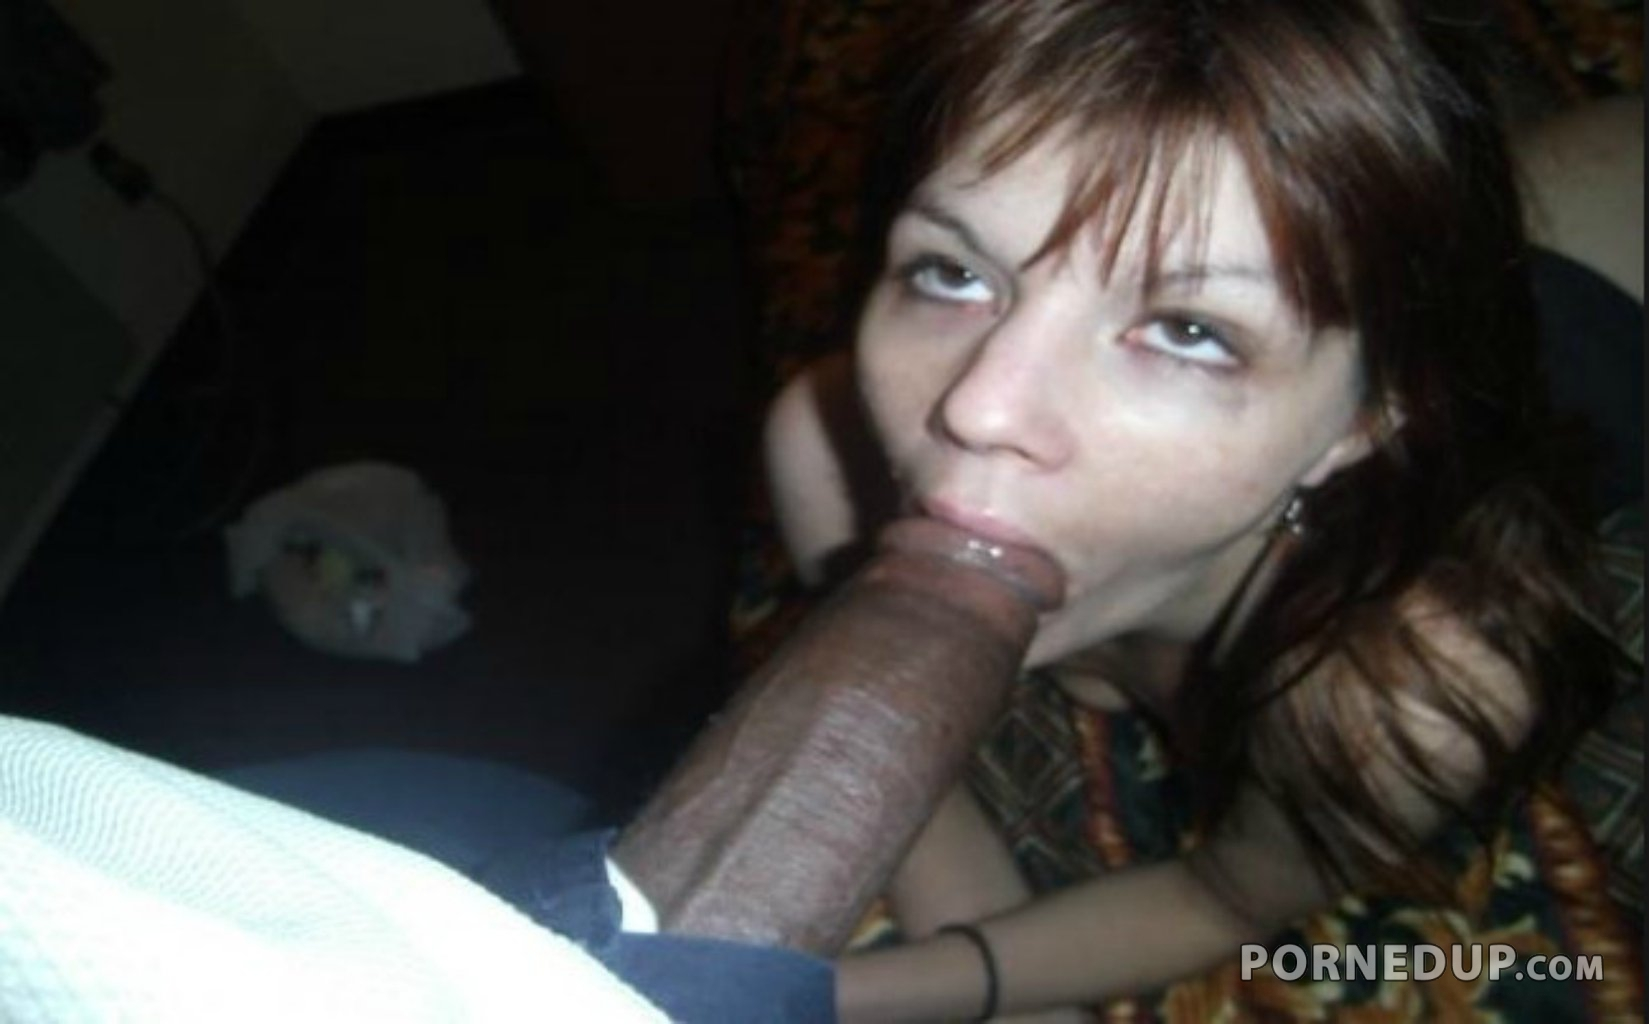 omegele hebe omegle hebe Sucking A Huge Cock